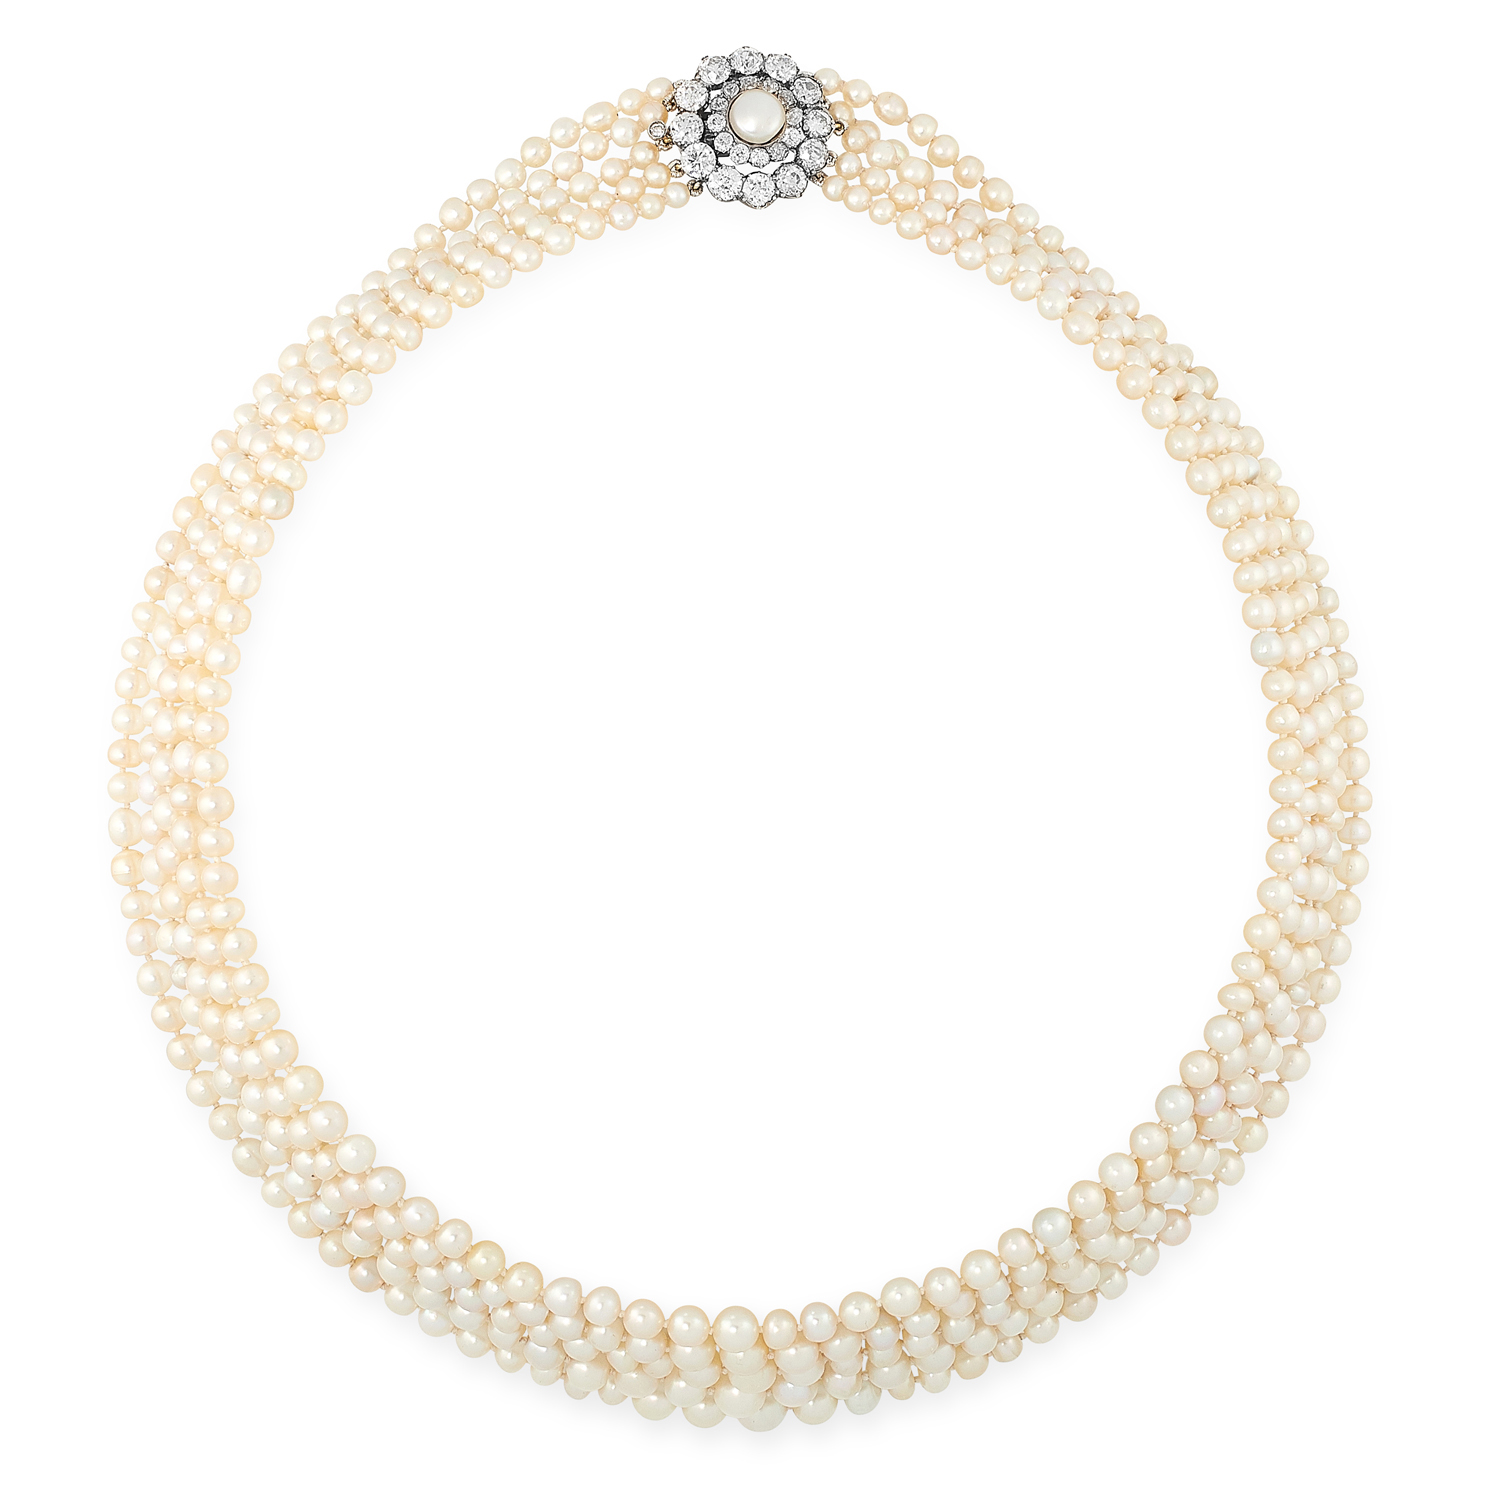 A NATURAL PEARL AND DIAMOND FIVE ROW NECKLACE in high carat yellow gold, comprising five rows of